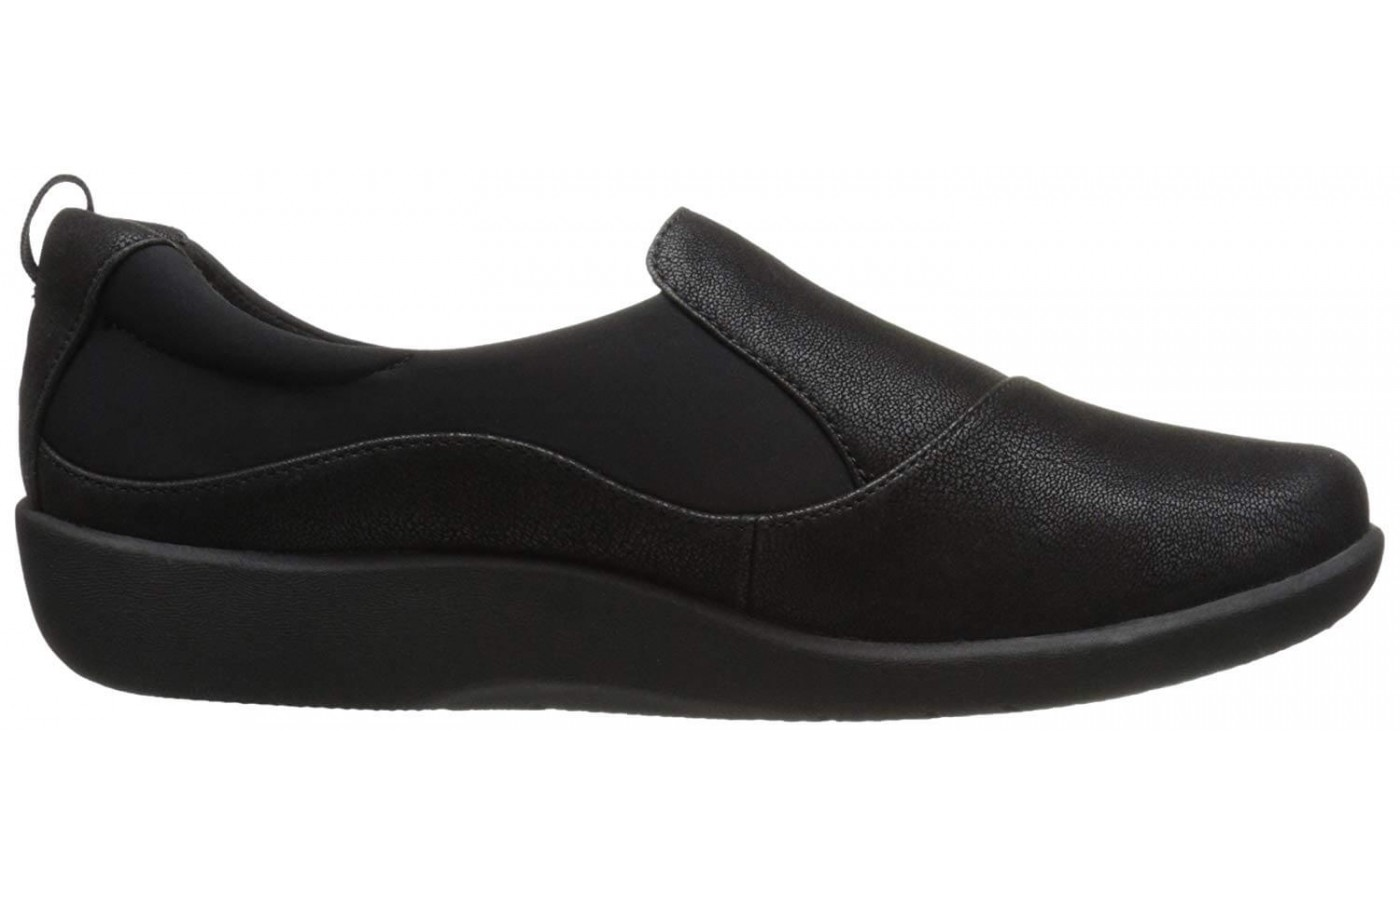 Clarks Sillian Paz Cloudstepper Right Angle